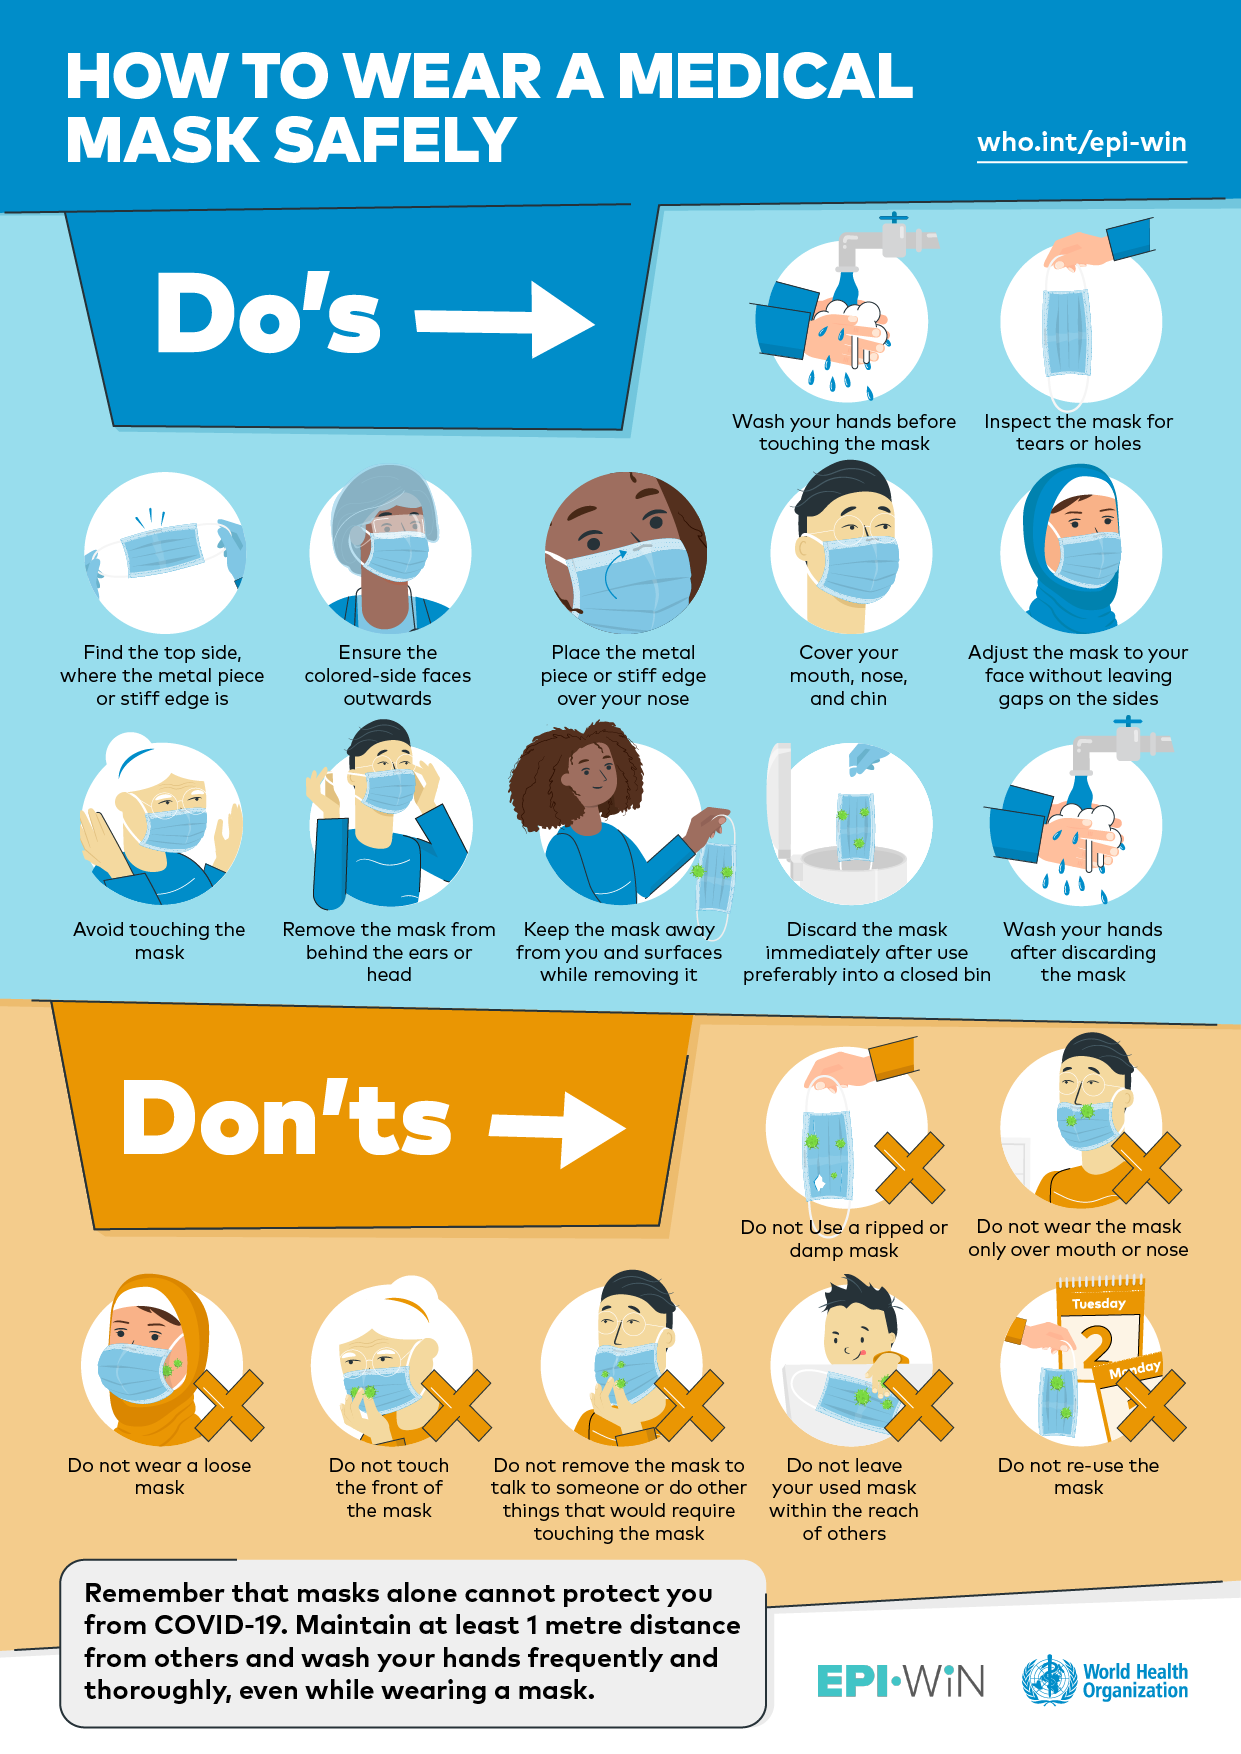 How to wear a medical mask safely.